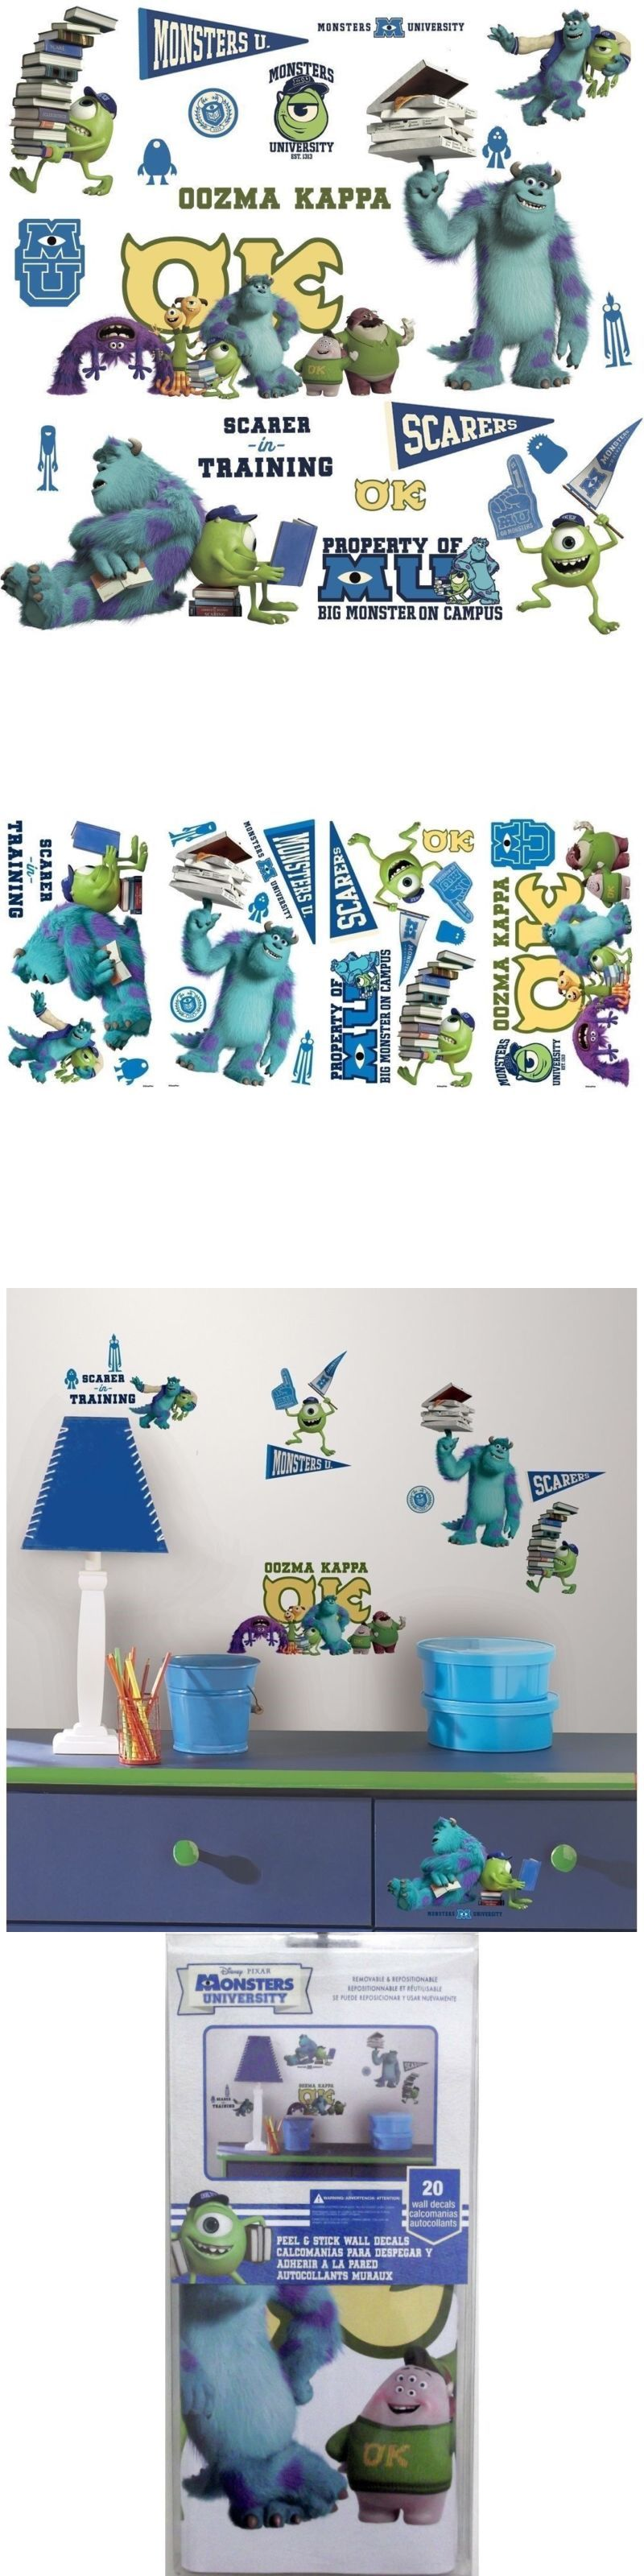 Bedroom Playroom And Dorm D Cor 115970: Monsters University 20 Wall